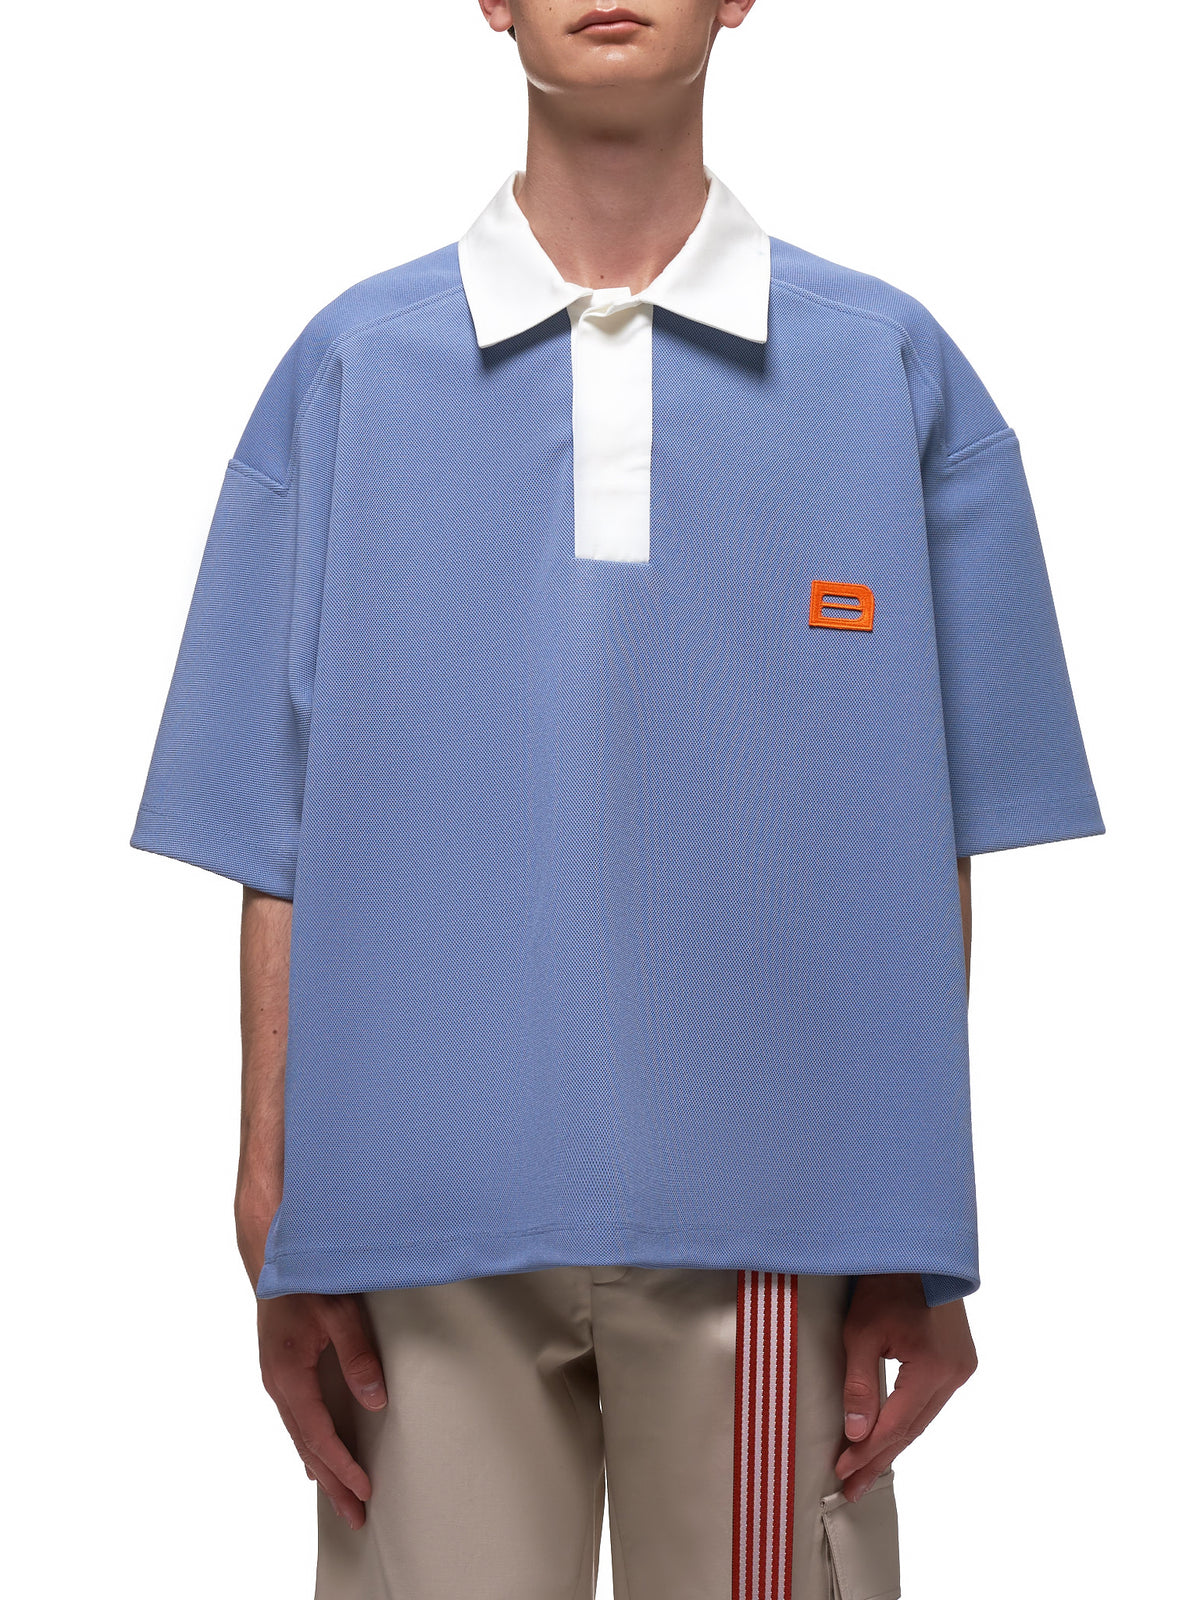 Oversized Sports Polo (6003-J001-PURPLE-BLUE)